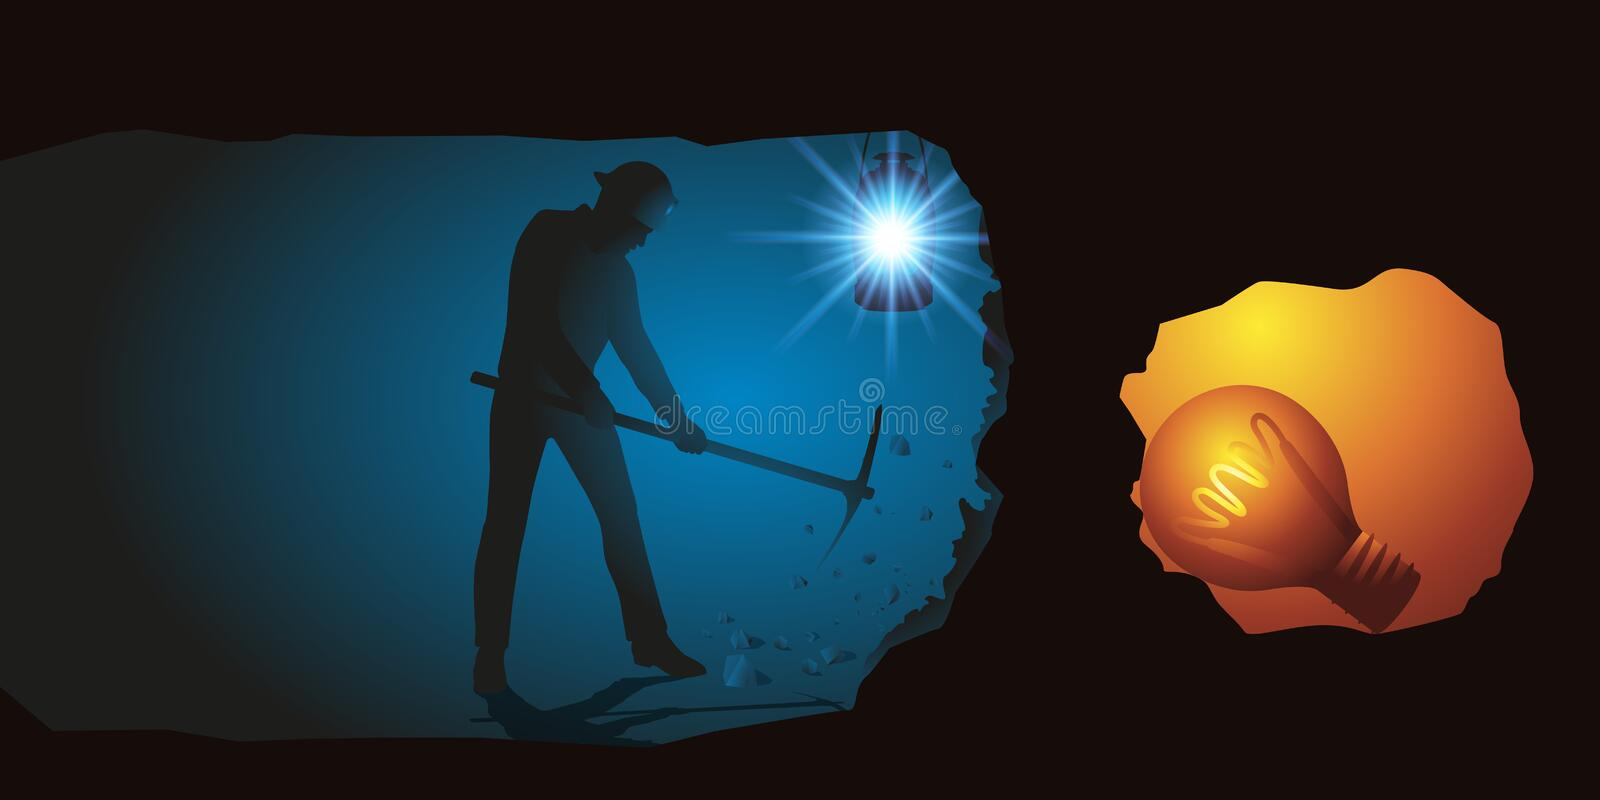 Symbol of reflection with a man digging an underground in search of an idea represented by a light bulb. stock photo